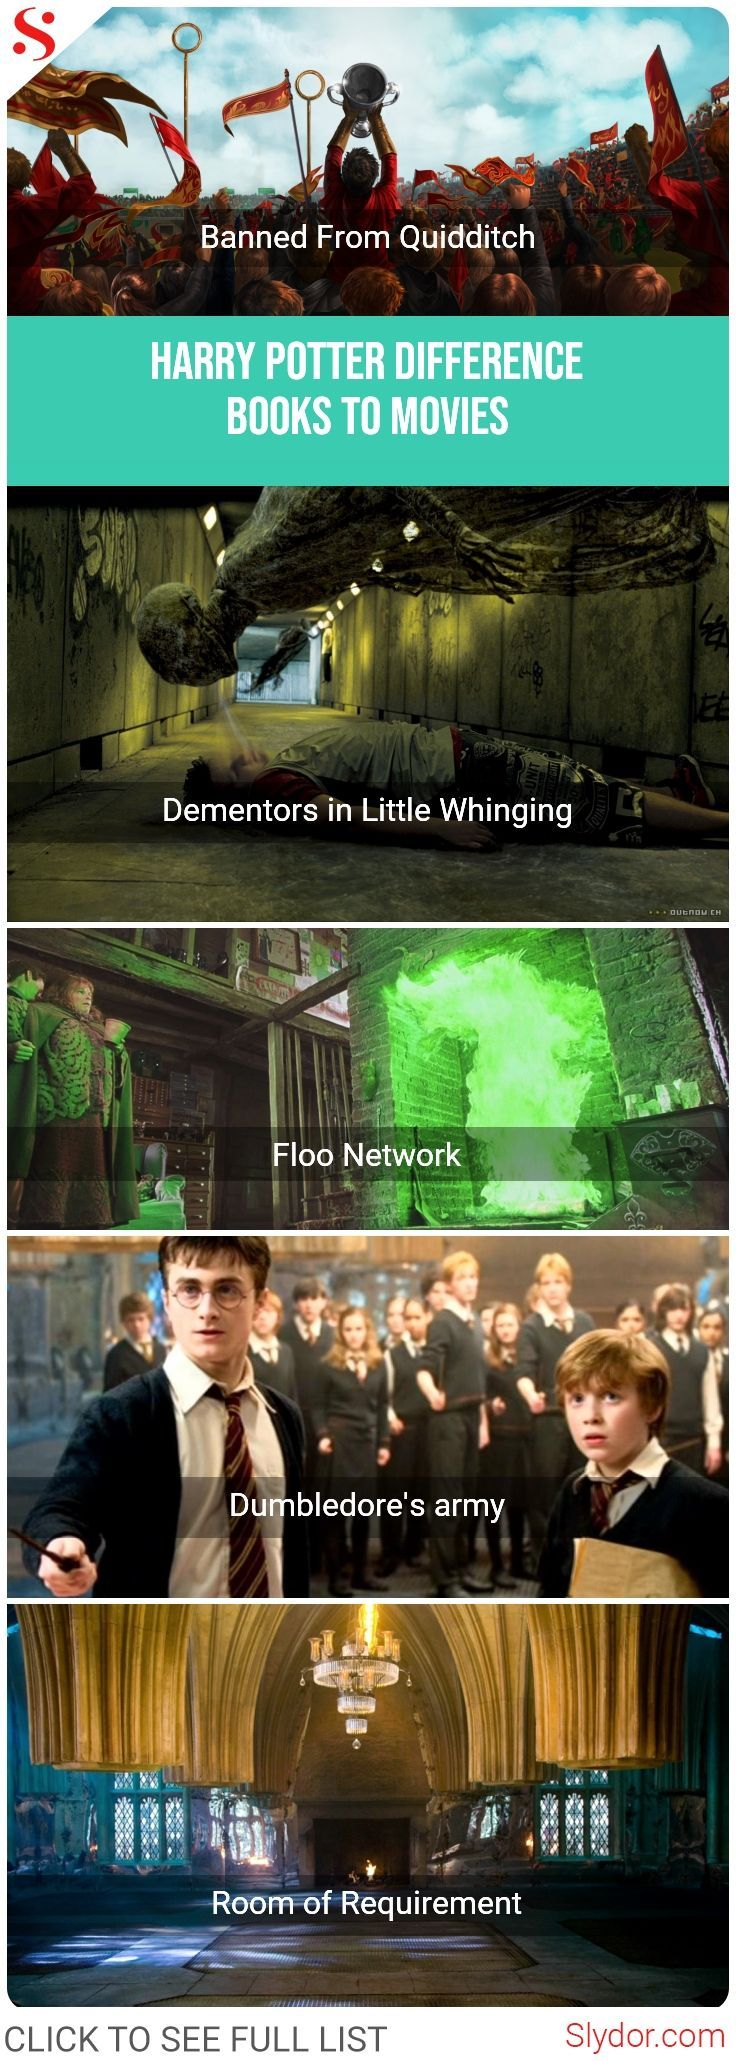 Harry Potter Book Movie Differences ~ Harry potter u difference from books to movies ii harry potter